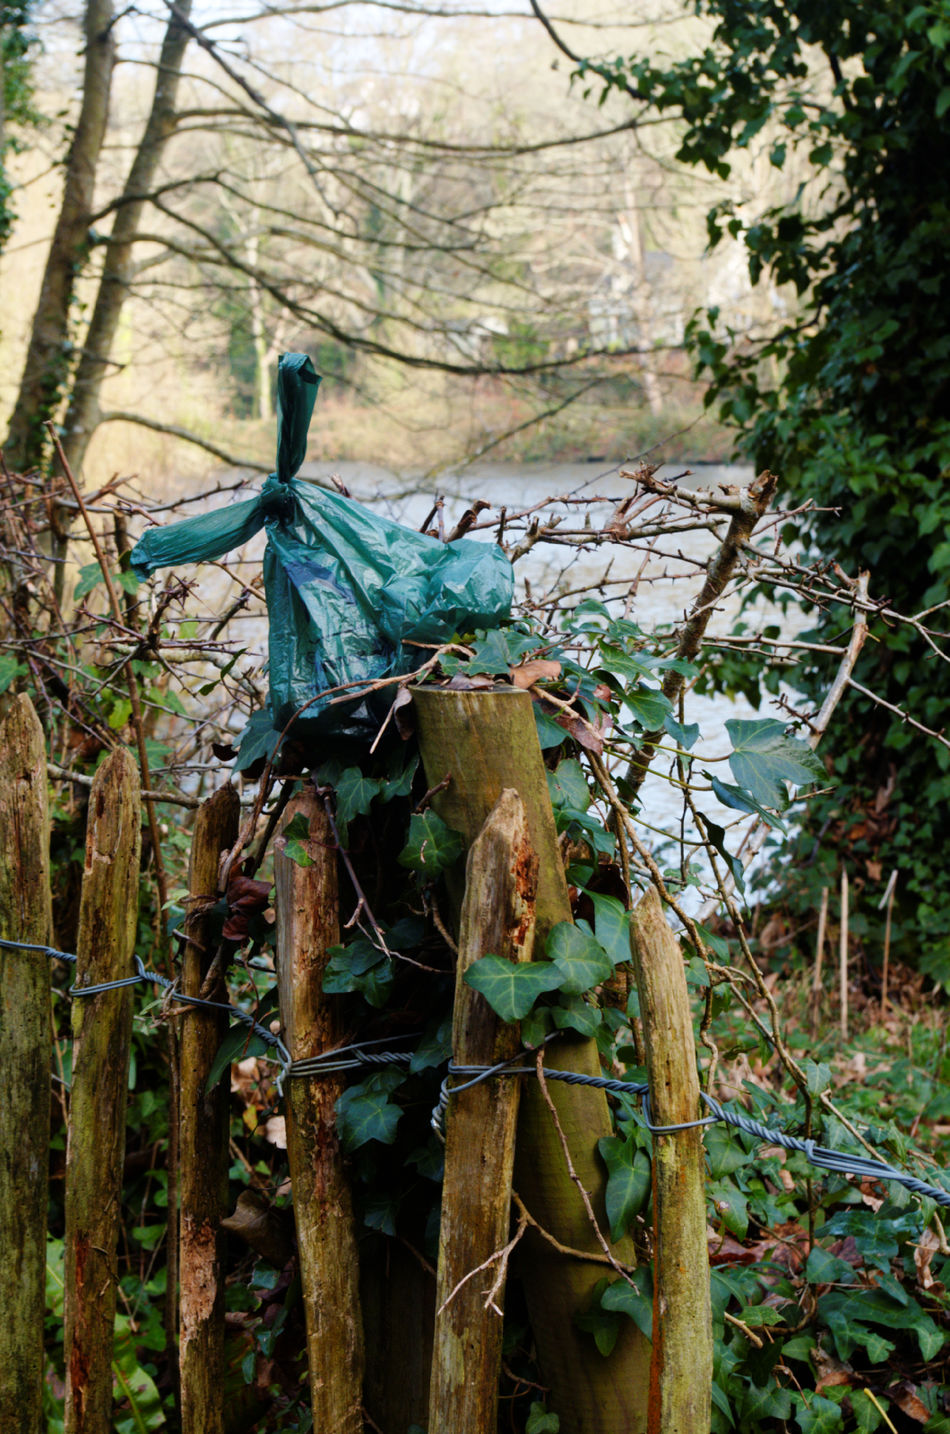 I had to capture this act of thoughtlessness and show it to the world. Someone has been responsible to put their dog's mess in a bag but irresponsible to leave the bag of mess lying around for someone else to dispose of. That is just plain lazy! Bag Dog Litter Fence Irresponsibly Responsible Jersey Me Reservoir Rubbish Thoughtless Waterworks Valley Woods